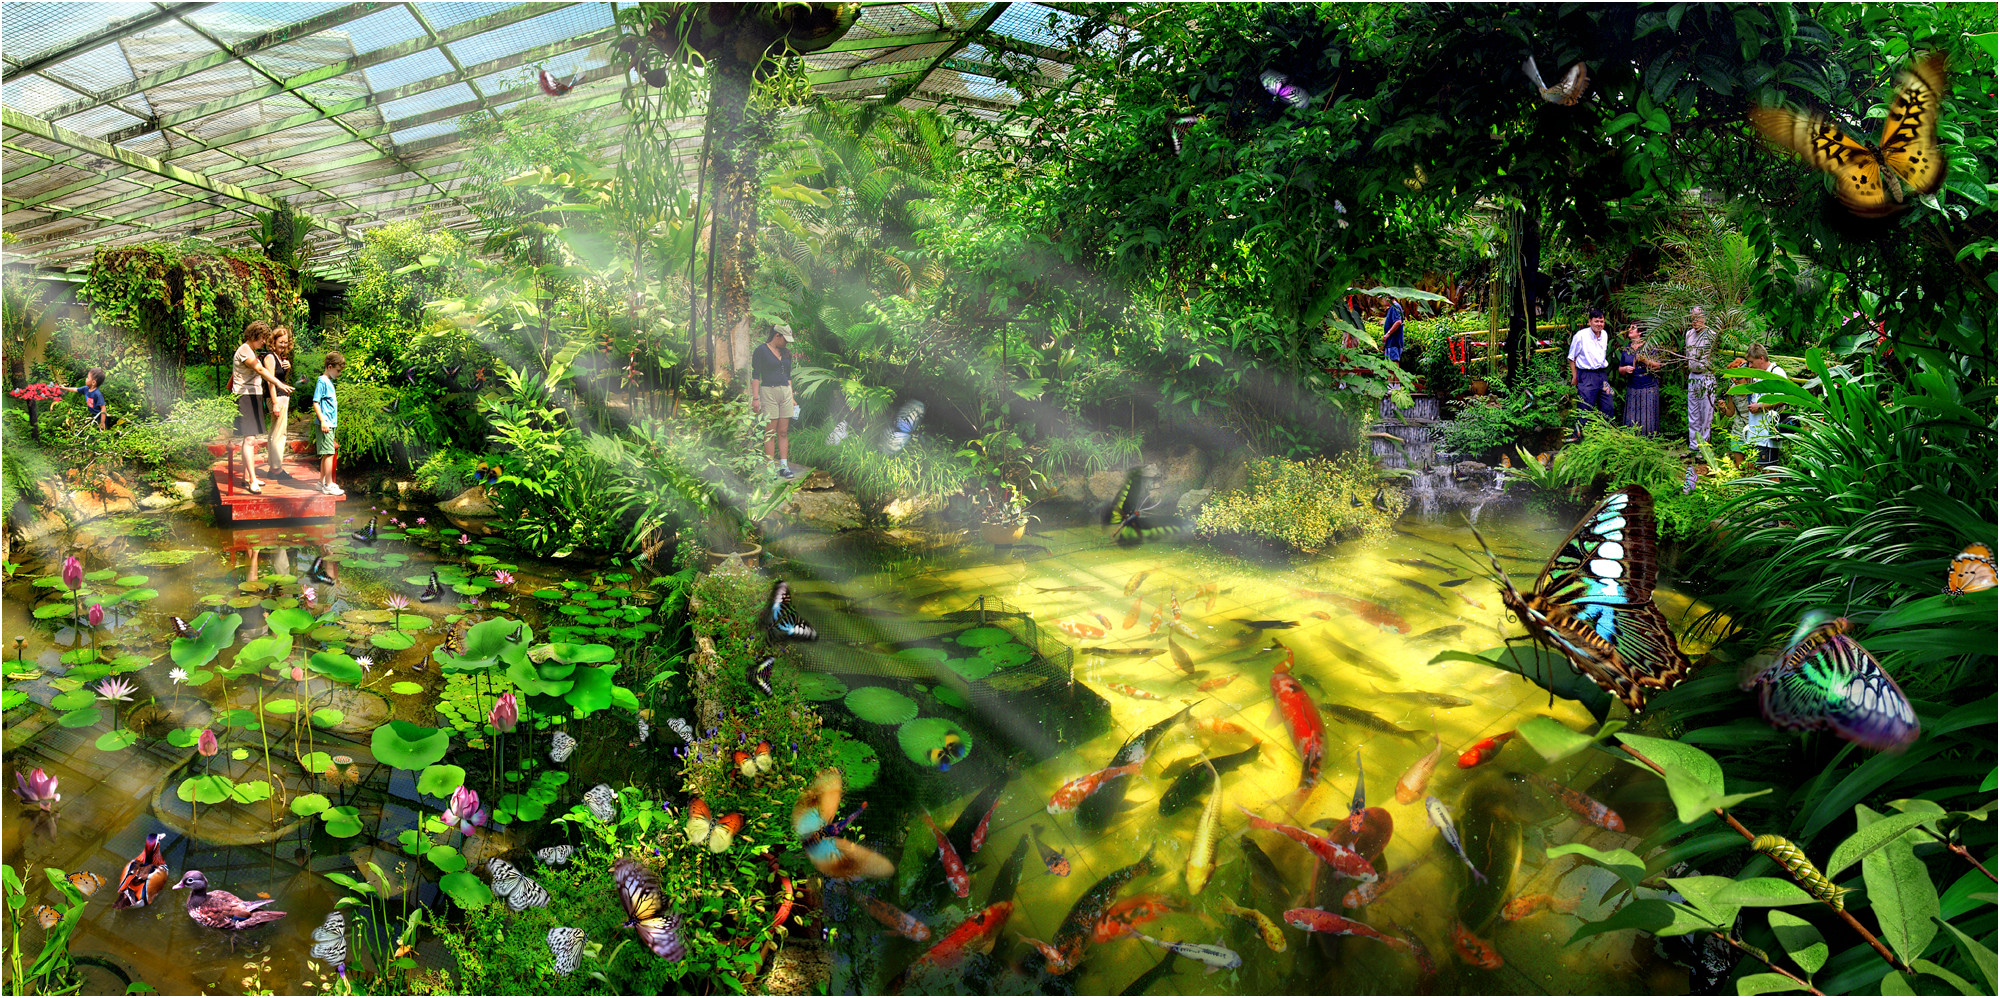 Paradise Of Butterflies by SAMLIM